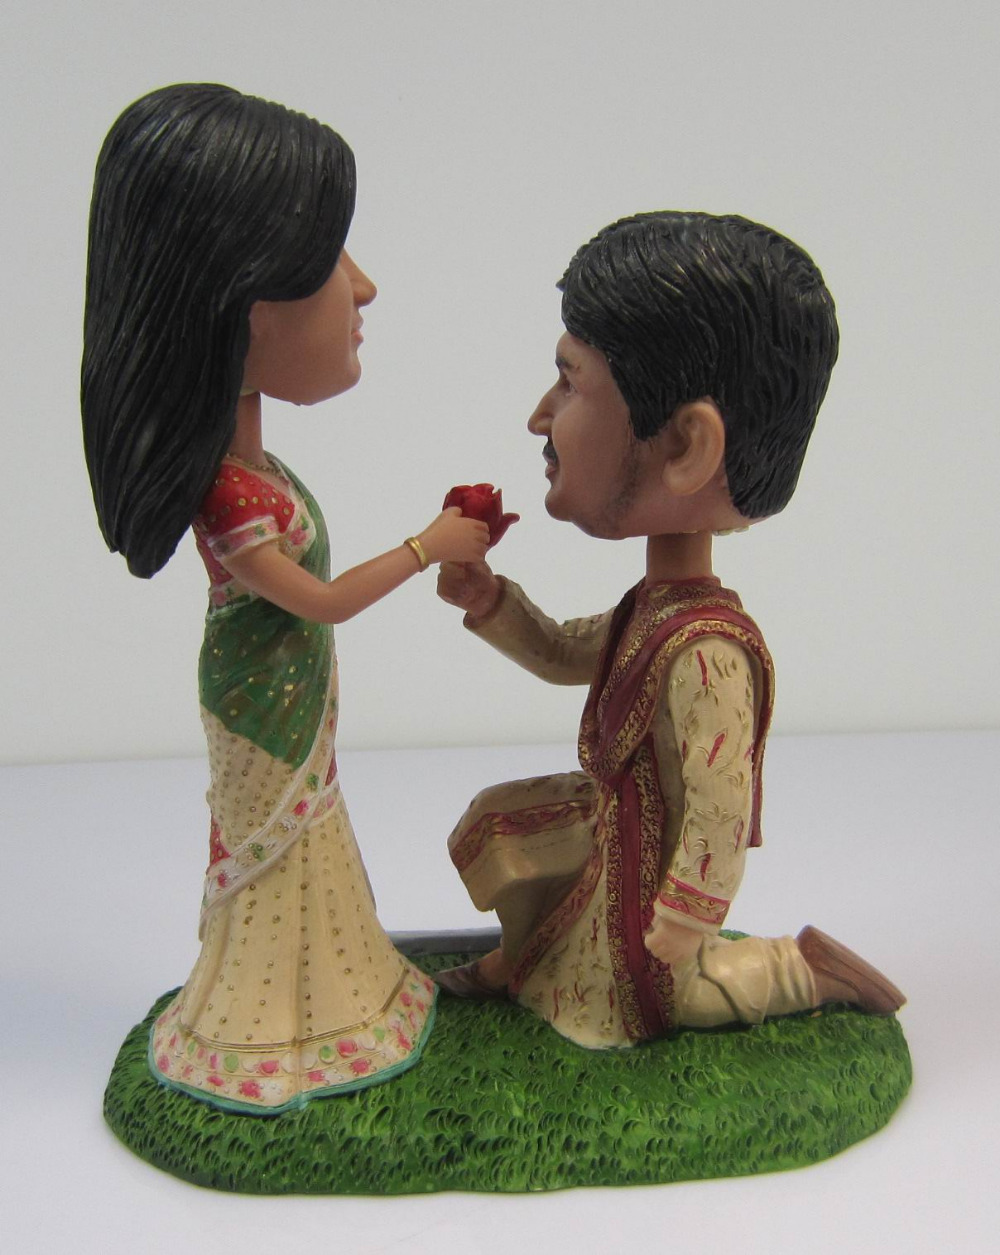 Fedex free shipping personalized bobblehead doll india propose fedex free shipping personalized bobblehead doll india propose wedding gift wedding decoration polyresin in cake decorating supplies from home garden on junglespirit Images